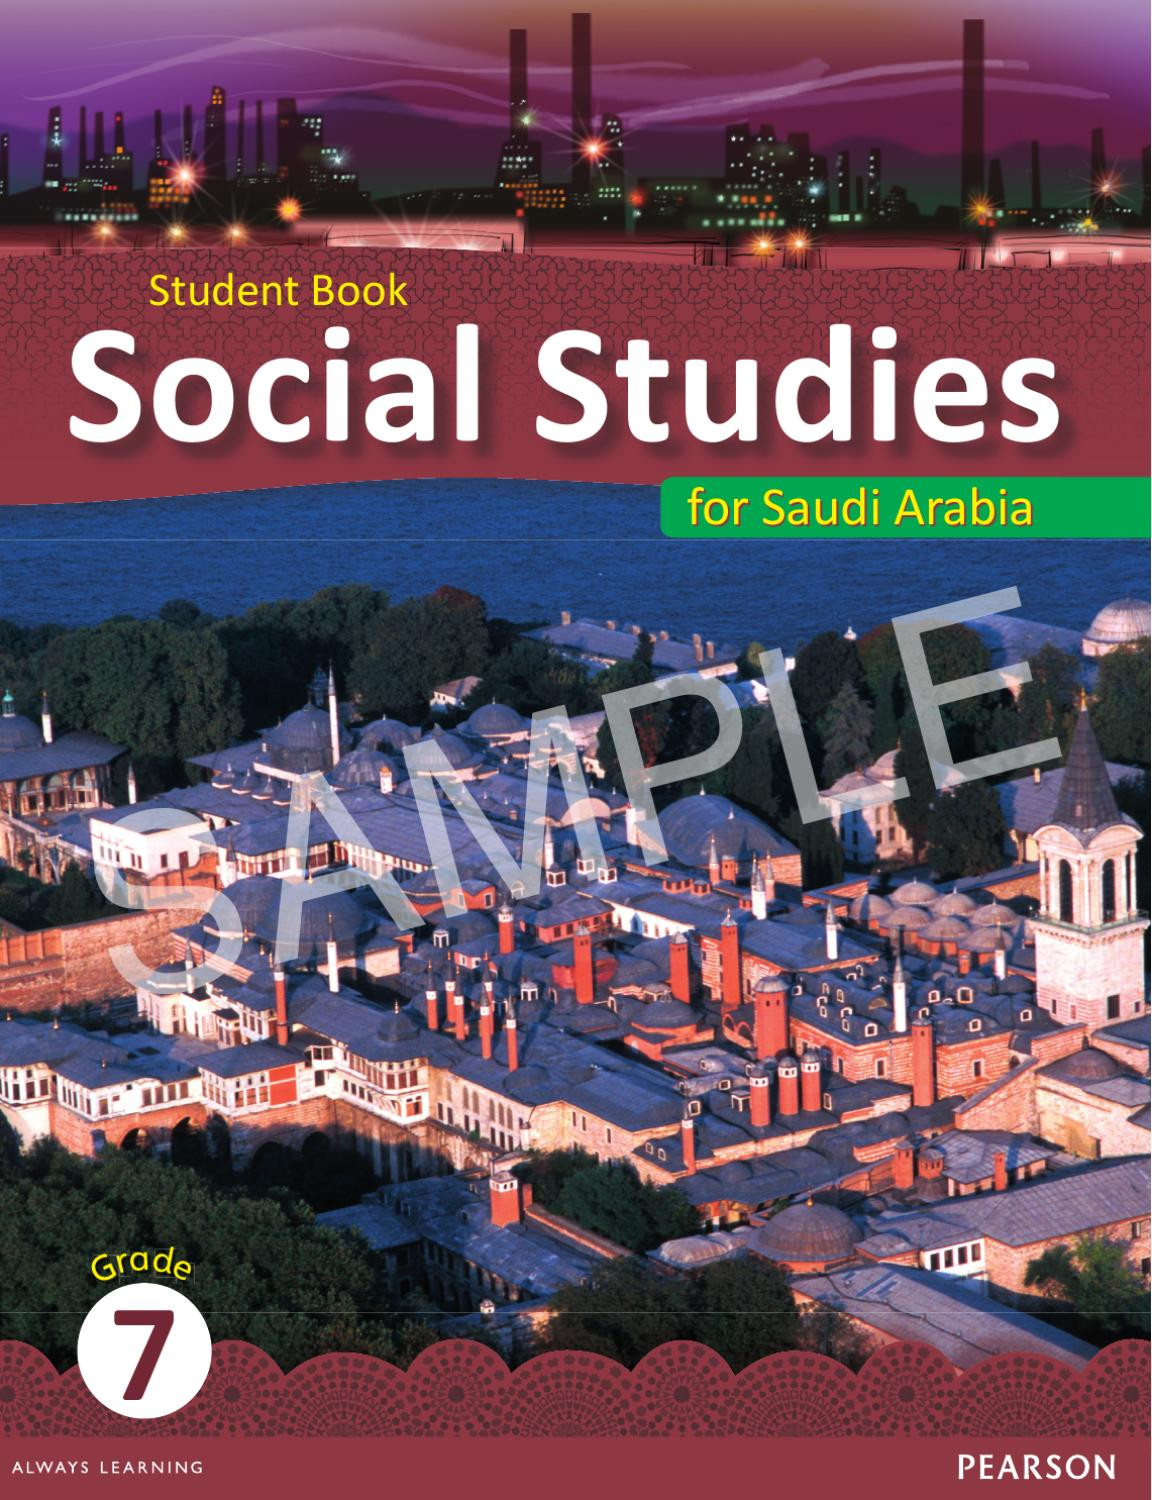 Grade 7 social Studies Worksheets Saudi social Stu S Grade 7 Student Book Unit 1 Sample by